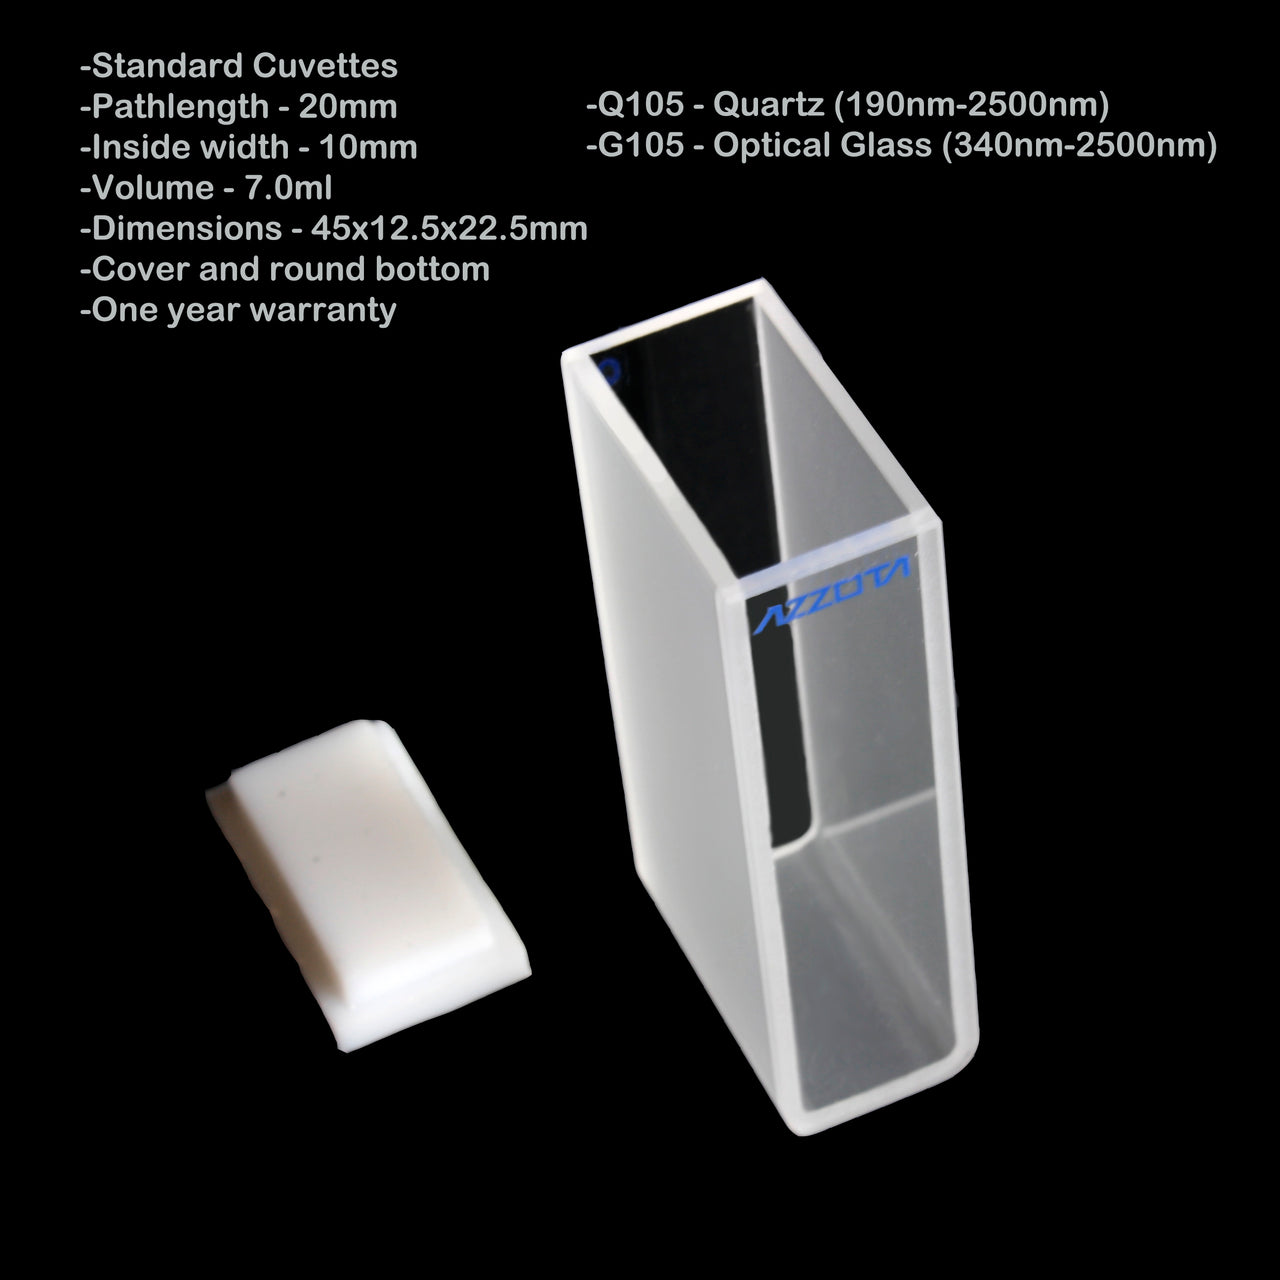 20mm Pathlength Standard Cuvette - 7ml